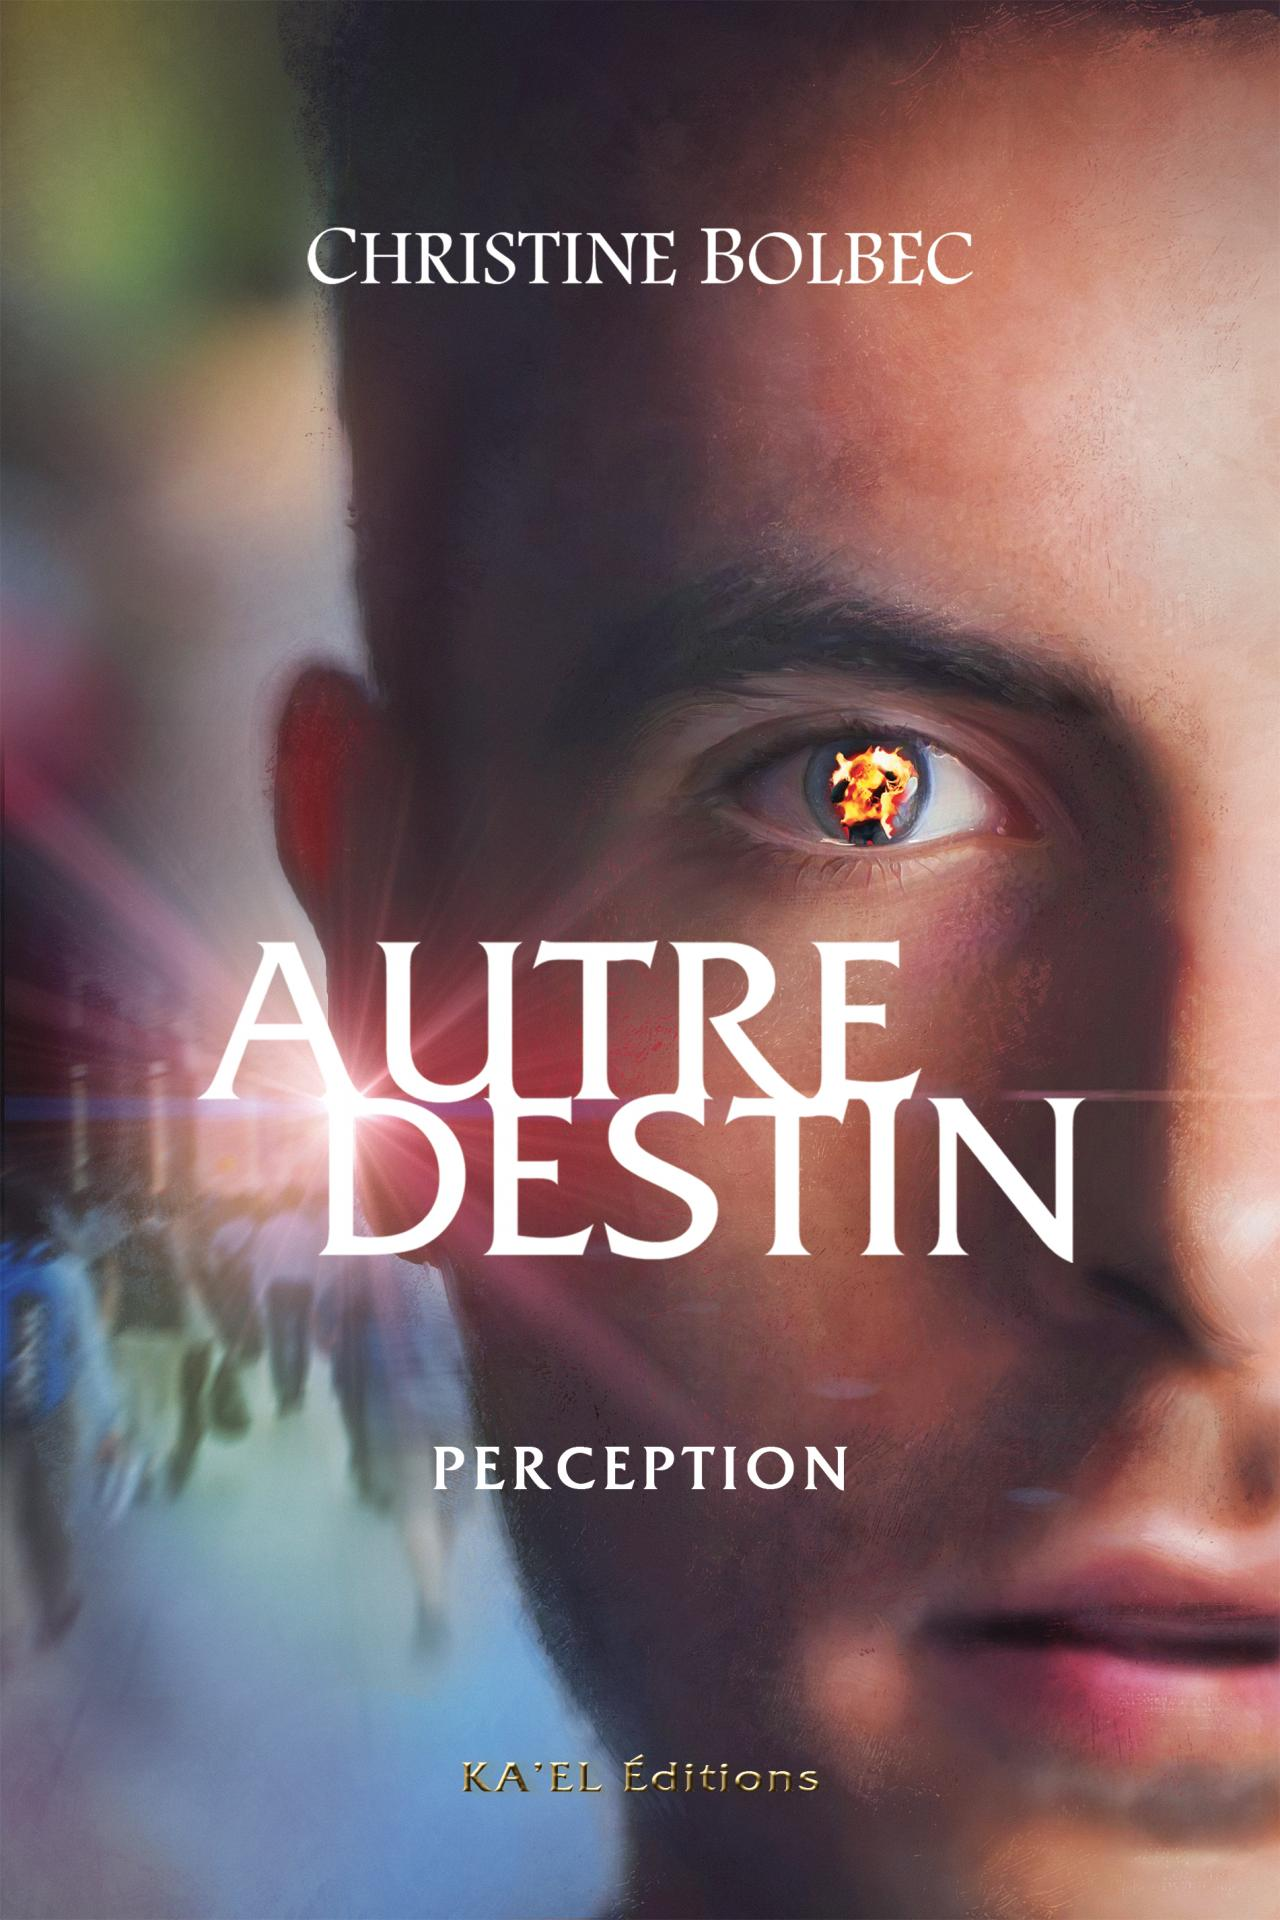 Autre destin, T1 : Perception, de Ch. Bolbec, KA'EL Éditions